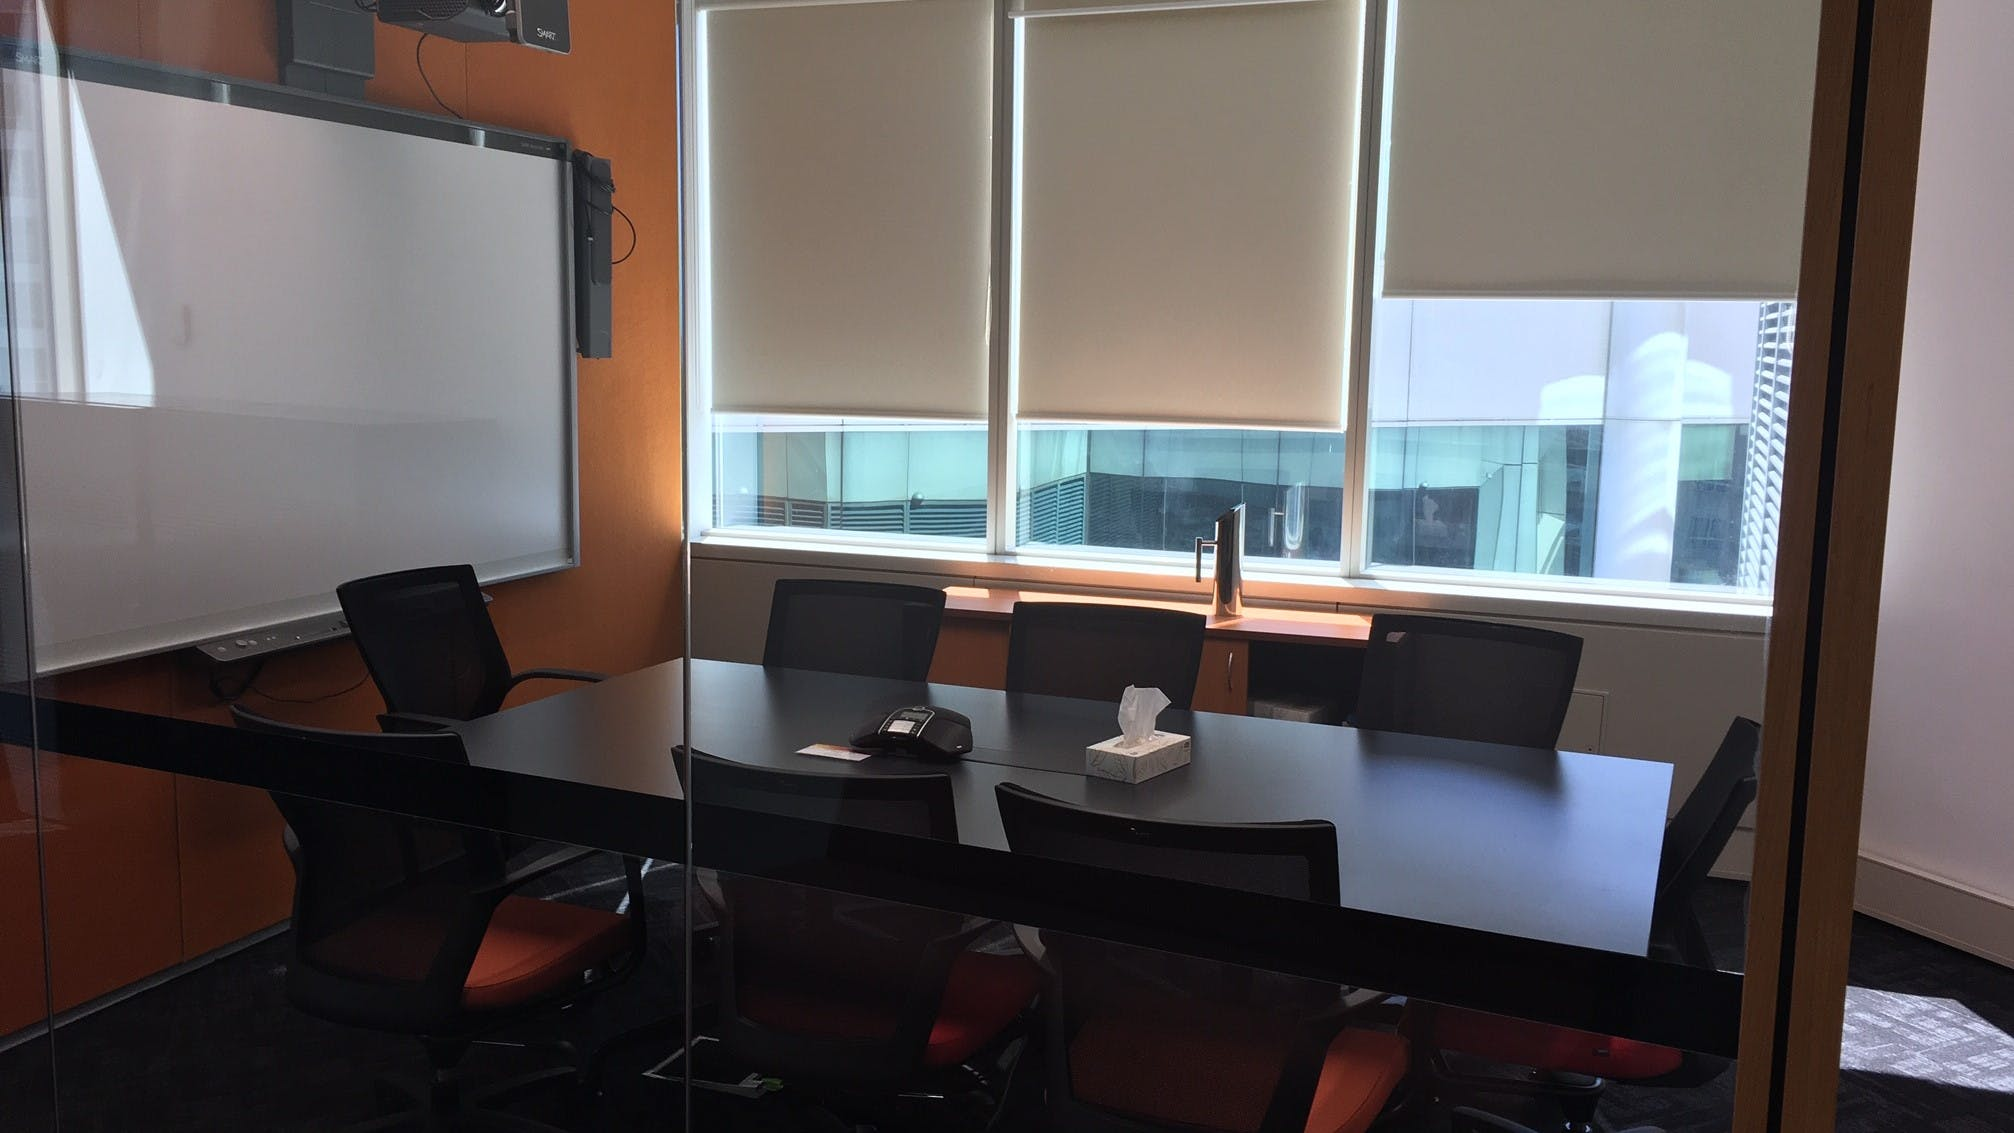 Boardroom, meeting room at Serviced Offices International (SOI) Chatswood, image 1